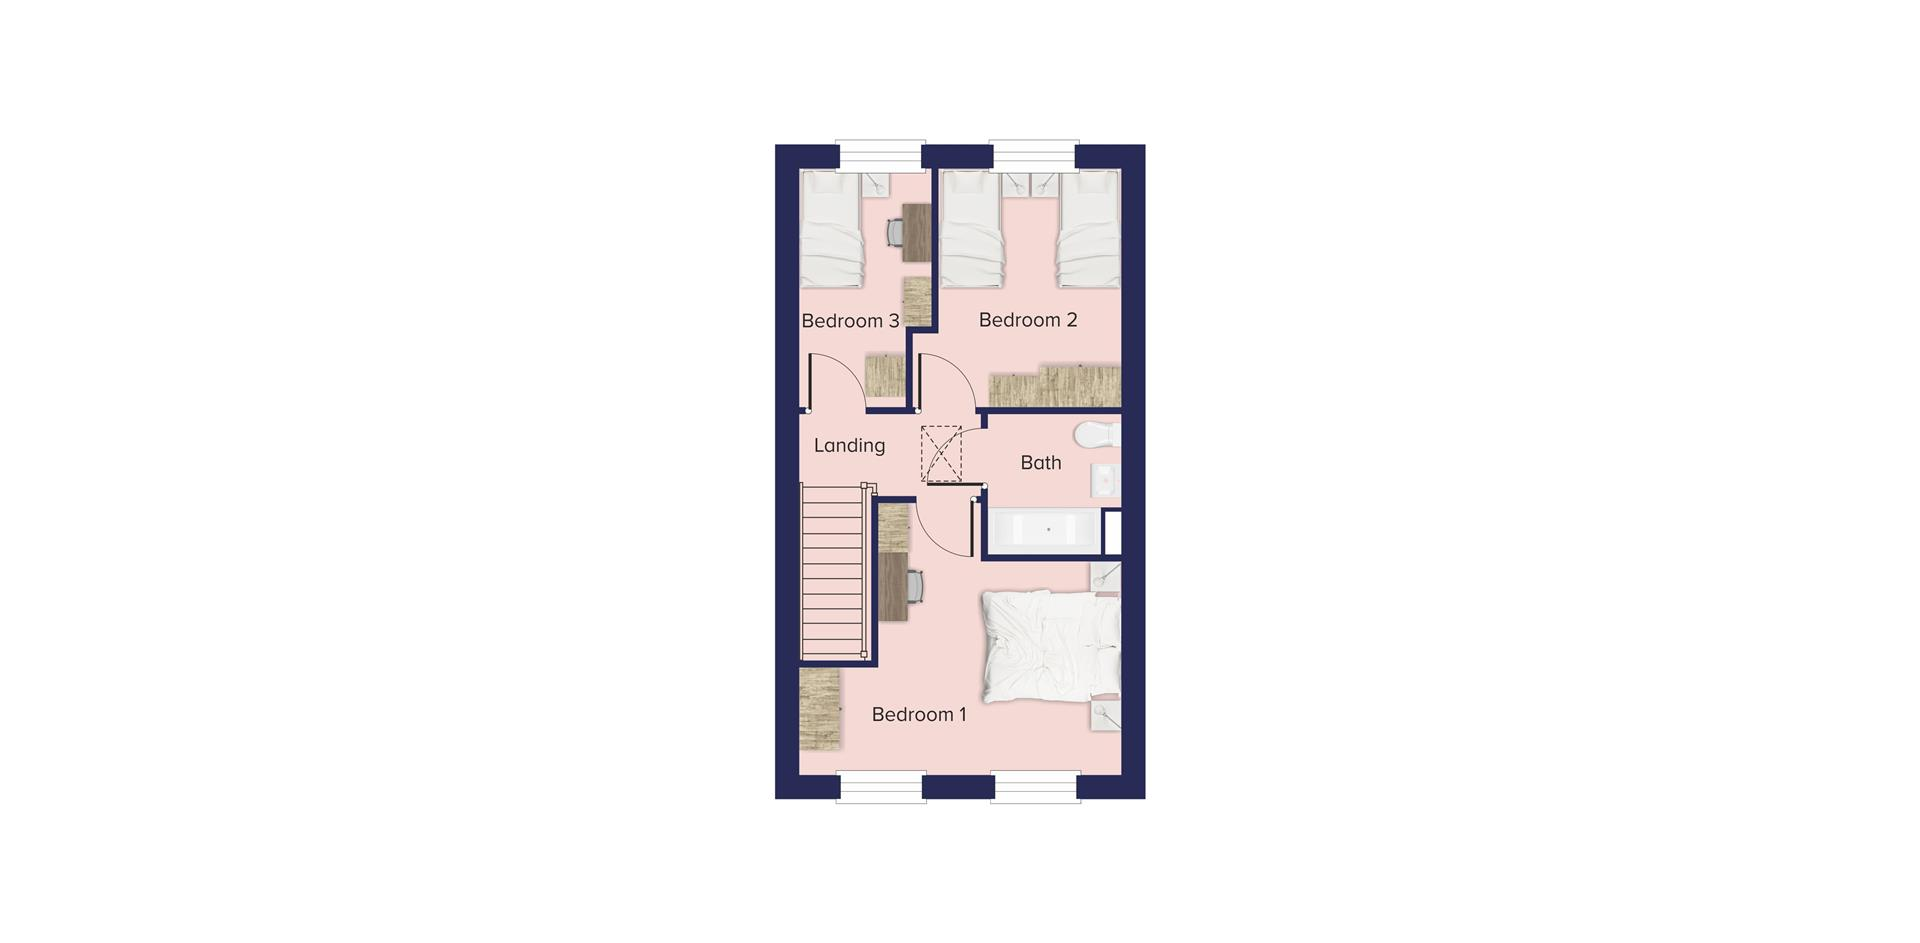 The Woodlands, Church Crookham_Plots 806, 807, 808